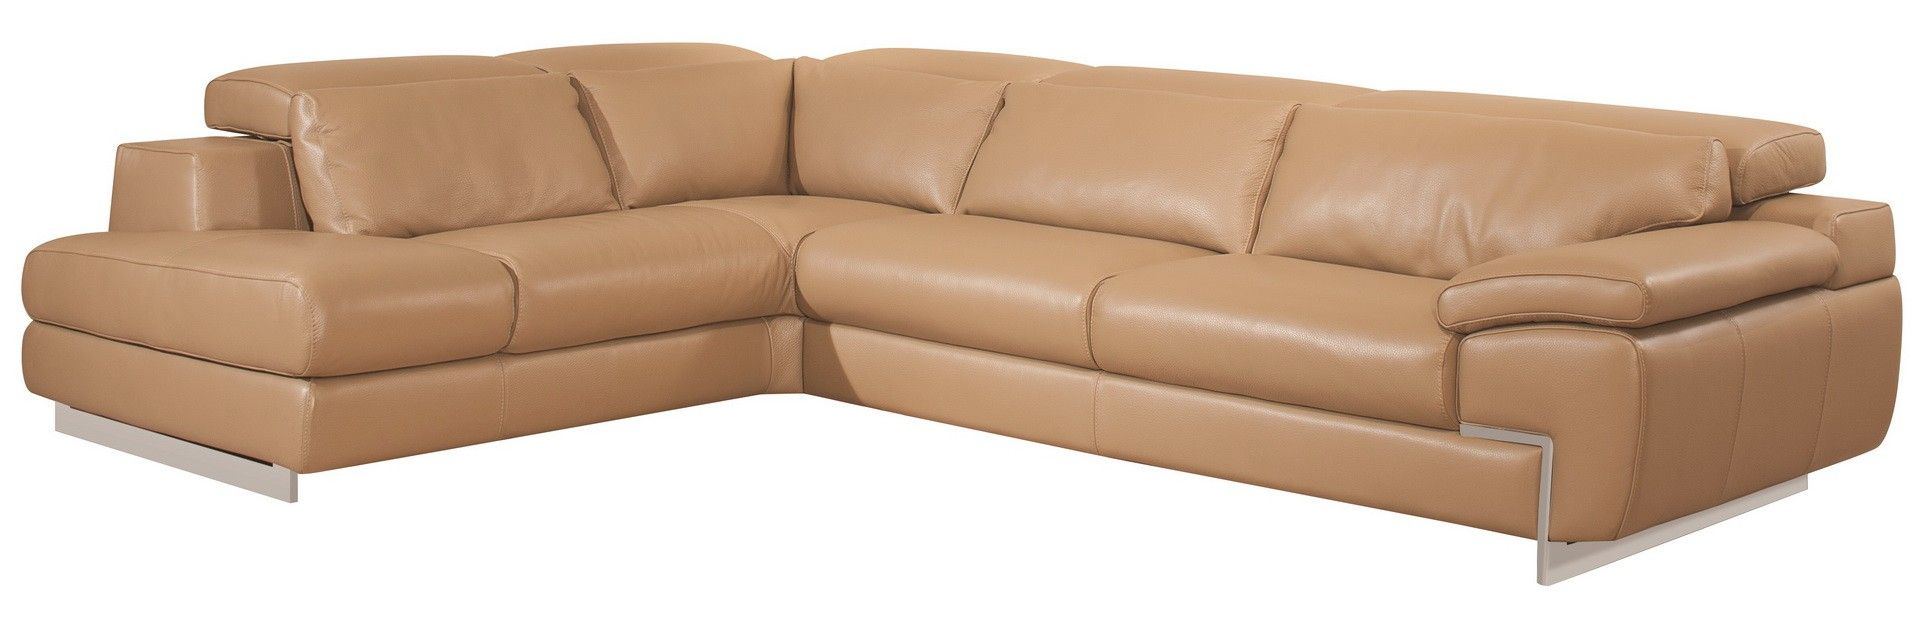 JuM Oregon II Sectional Left Brown Sectionals Pinterest Brown